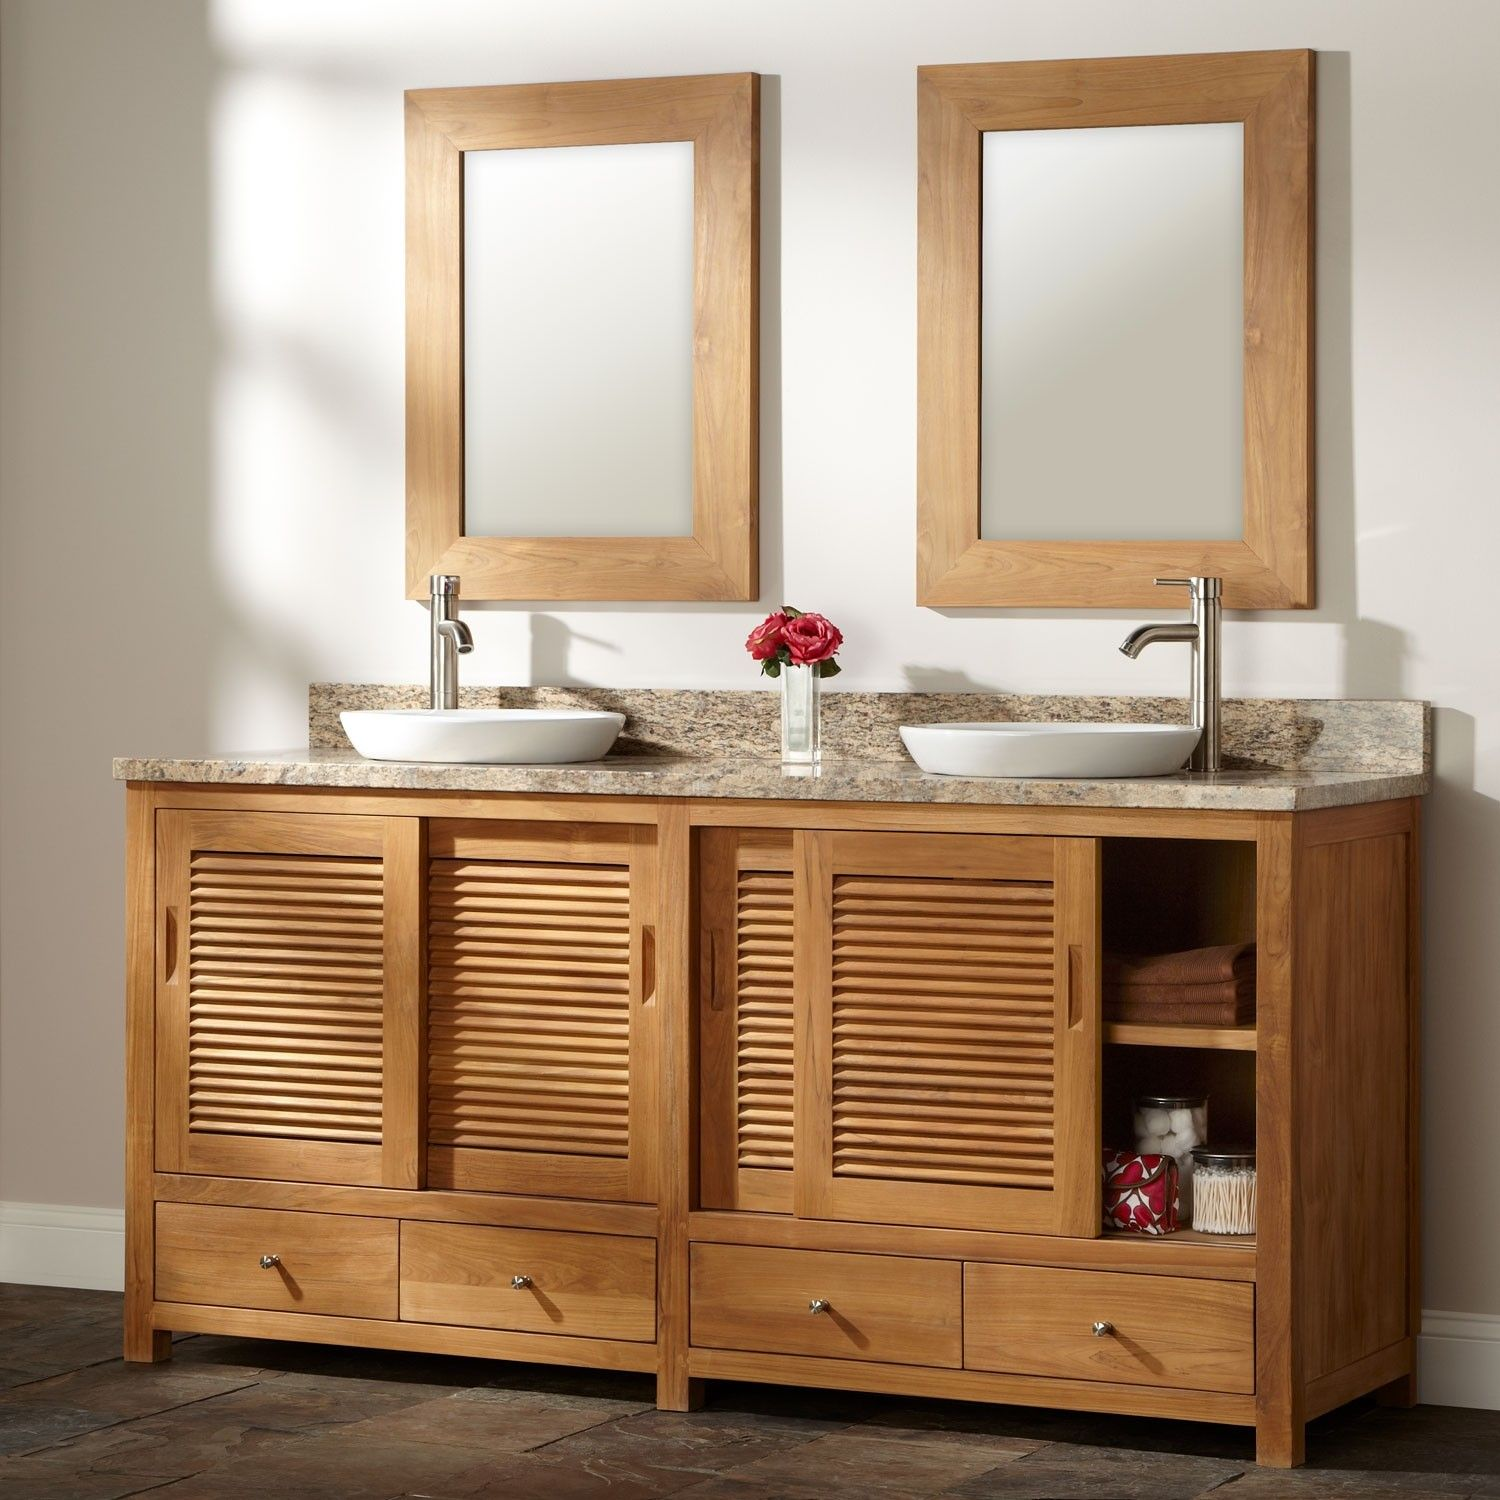 72 Arrey Teak Double Vanity For Semi Recessed Sinks Natural Teak Bathroom Vanity Vanity Modern Bathroom Vanity